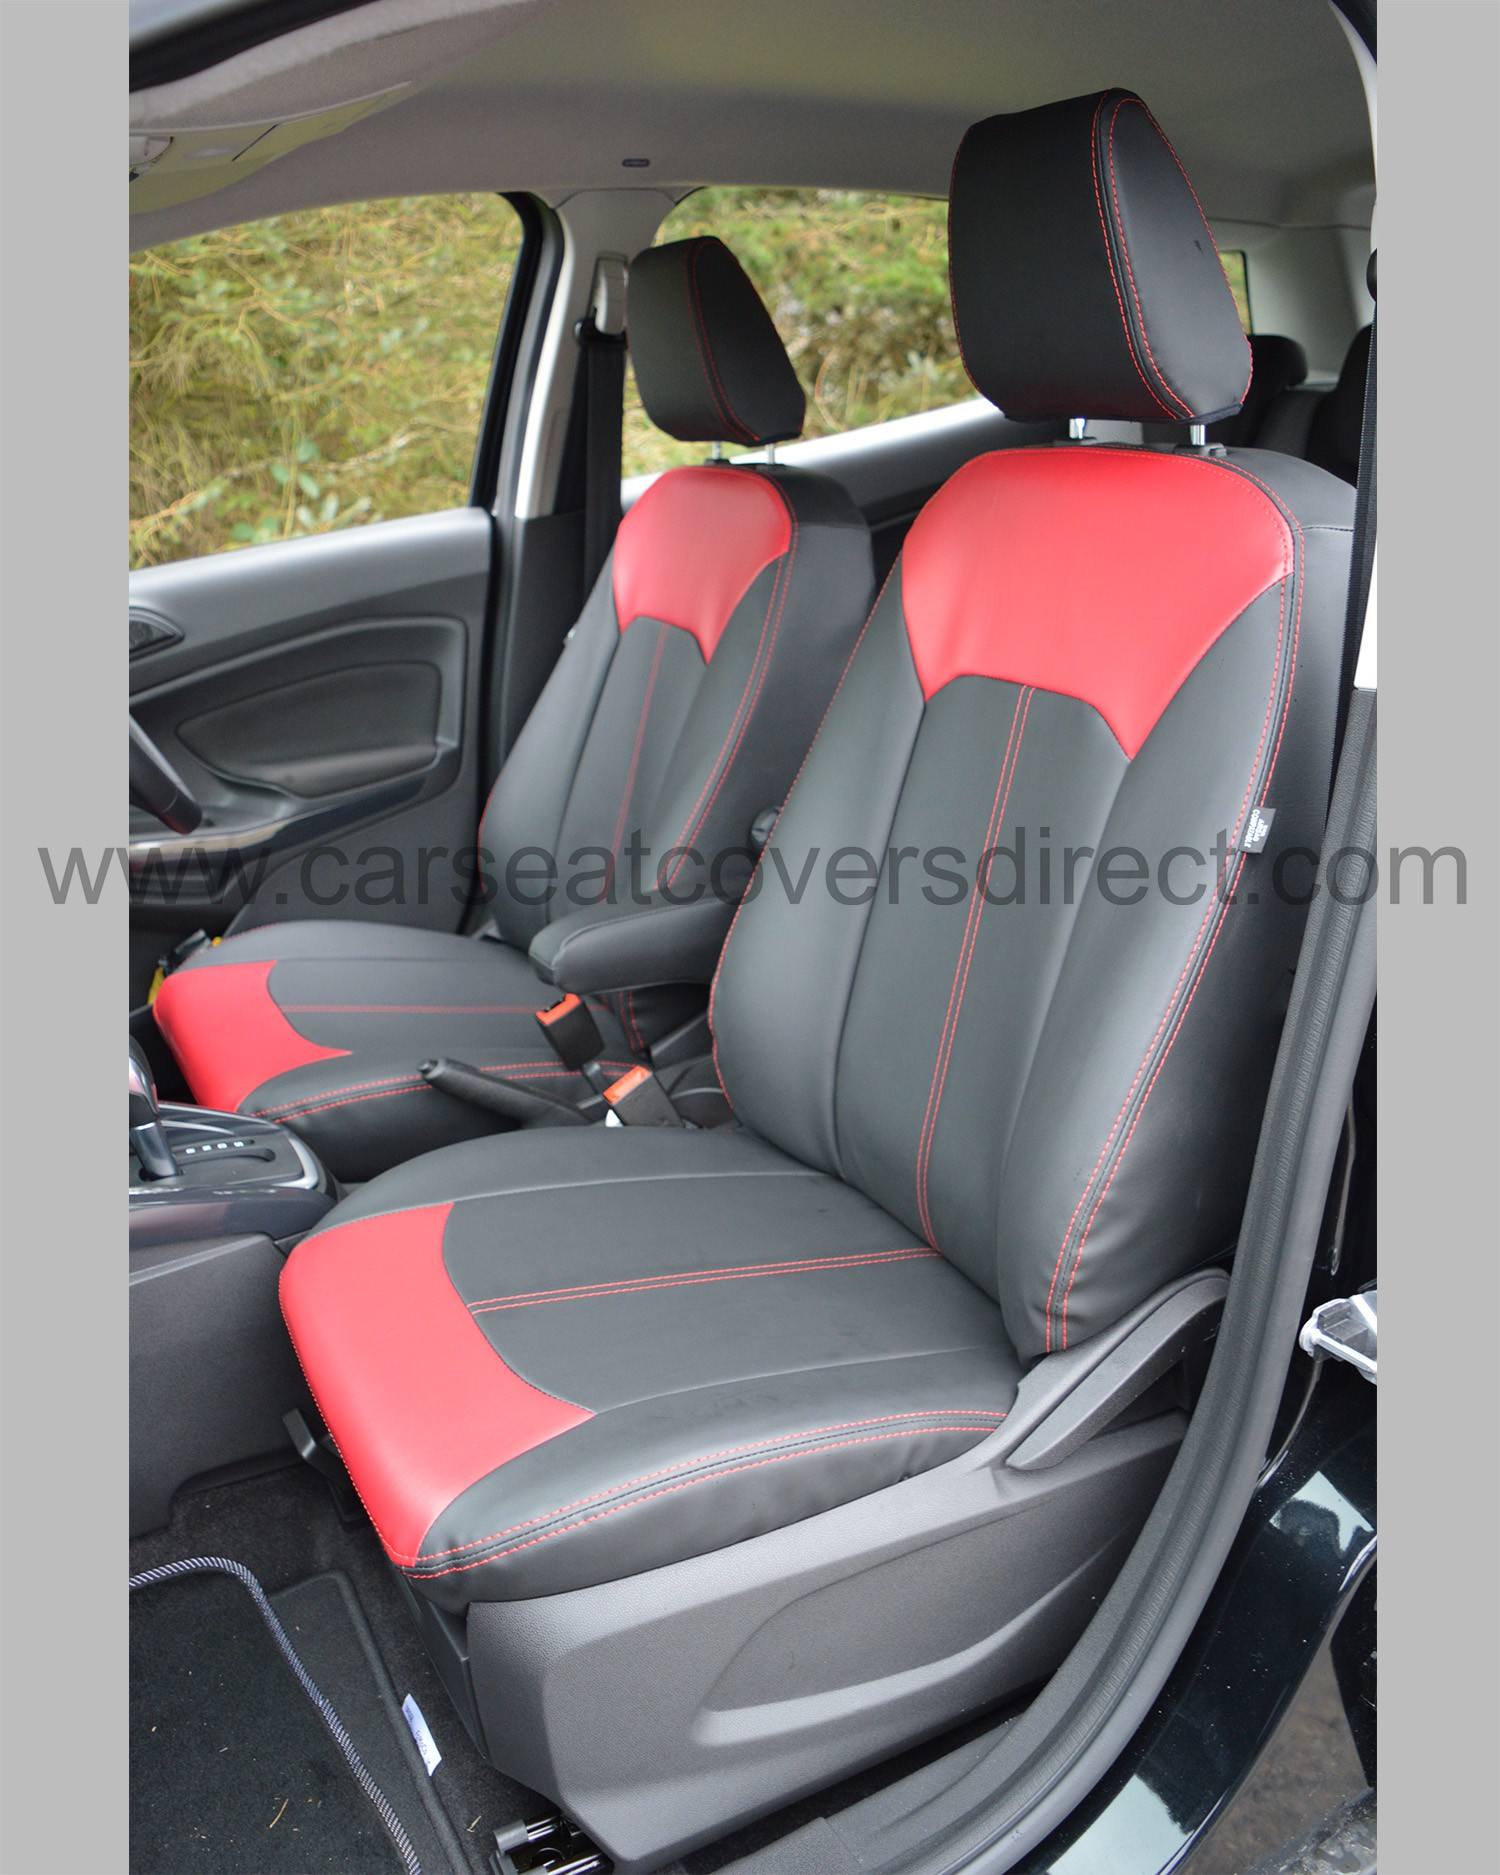 Ford EcoSport Seat Covers